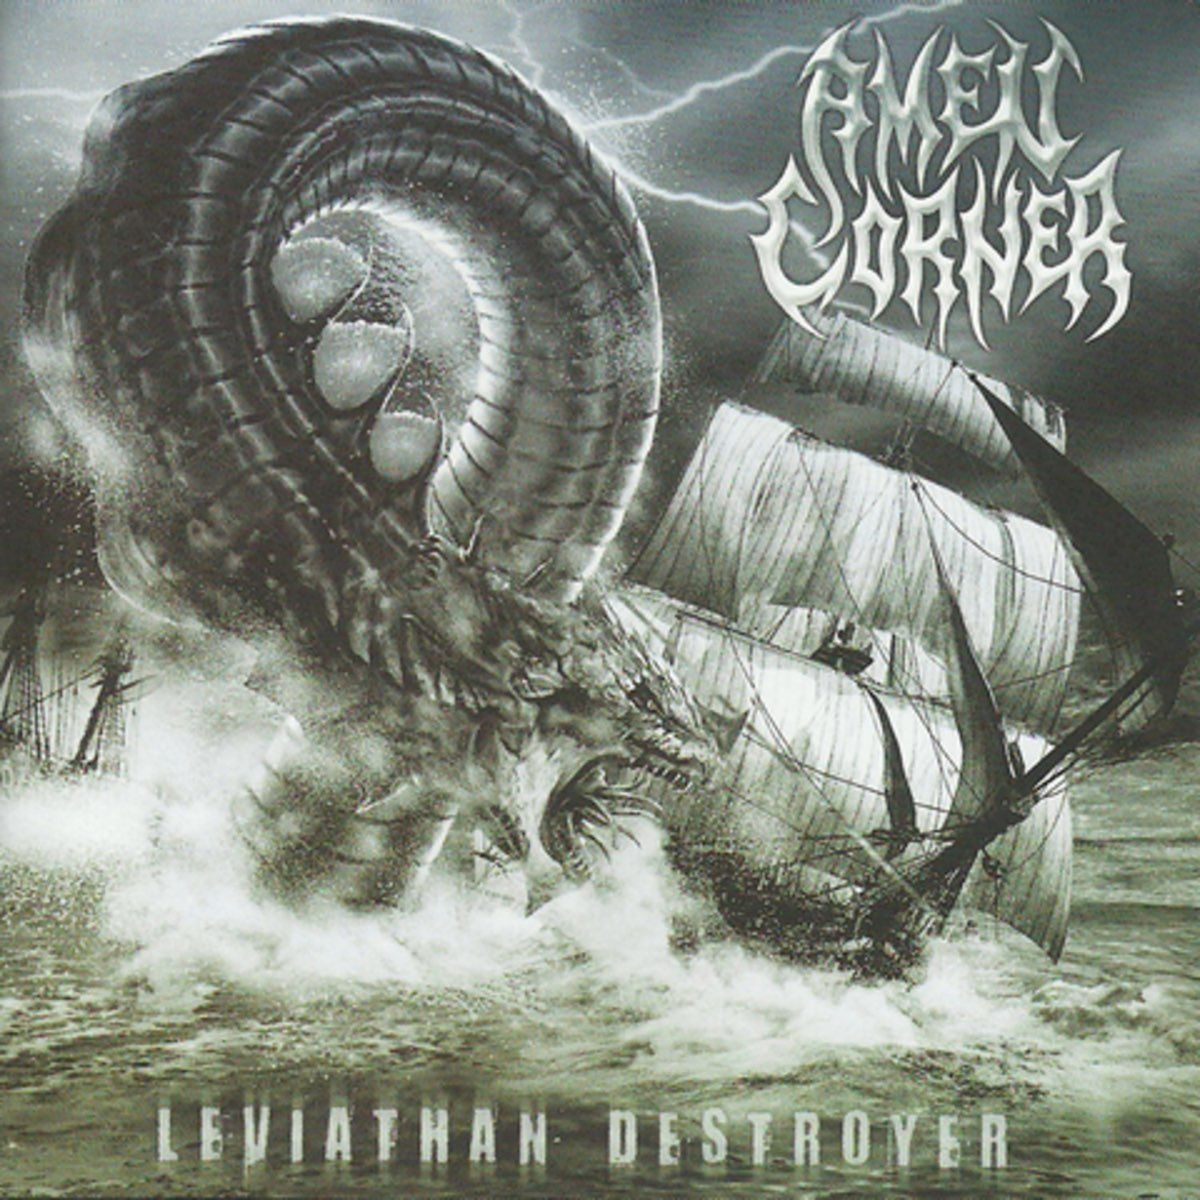 Review for Amen Corner - Leviathan Destroyer